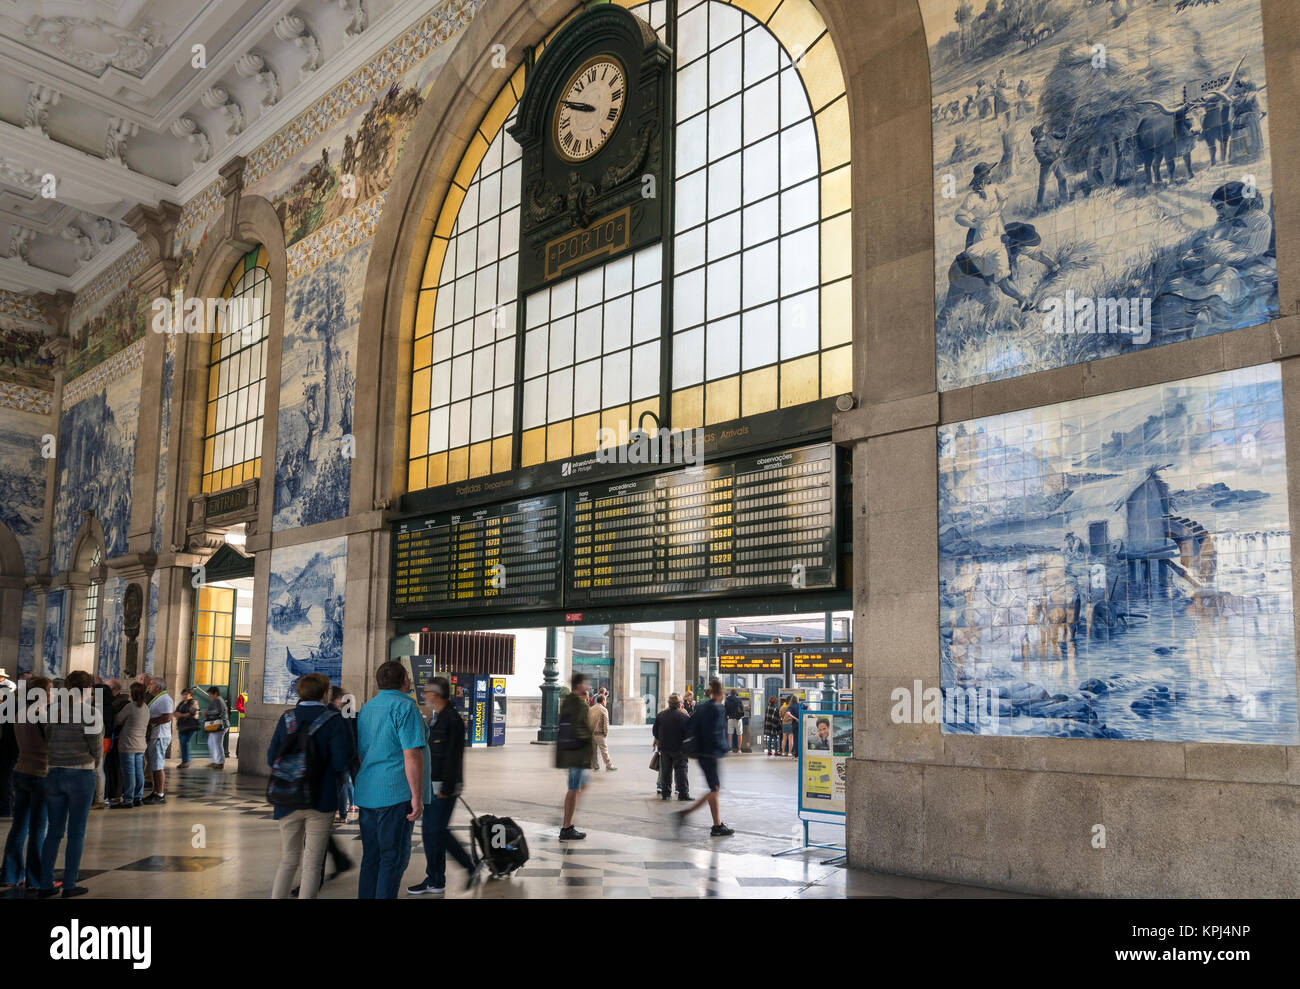 Traditional dececorated tiles ,azulejos, in Sao Bento railway station at Porto, Portugal Stock Photo